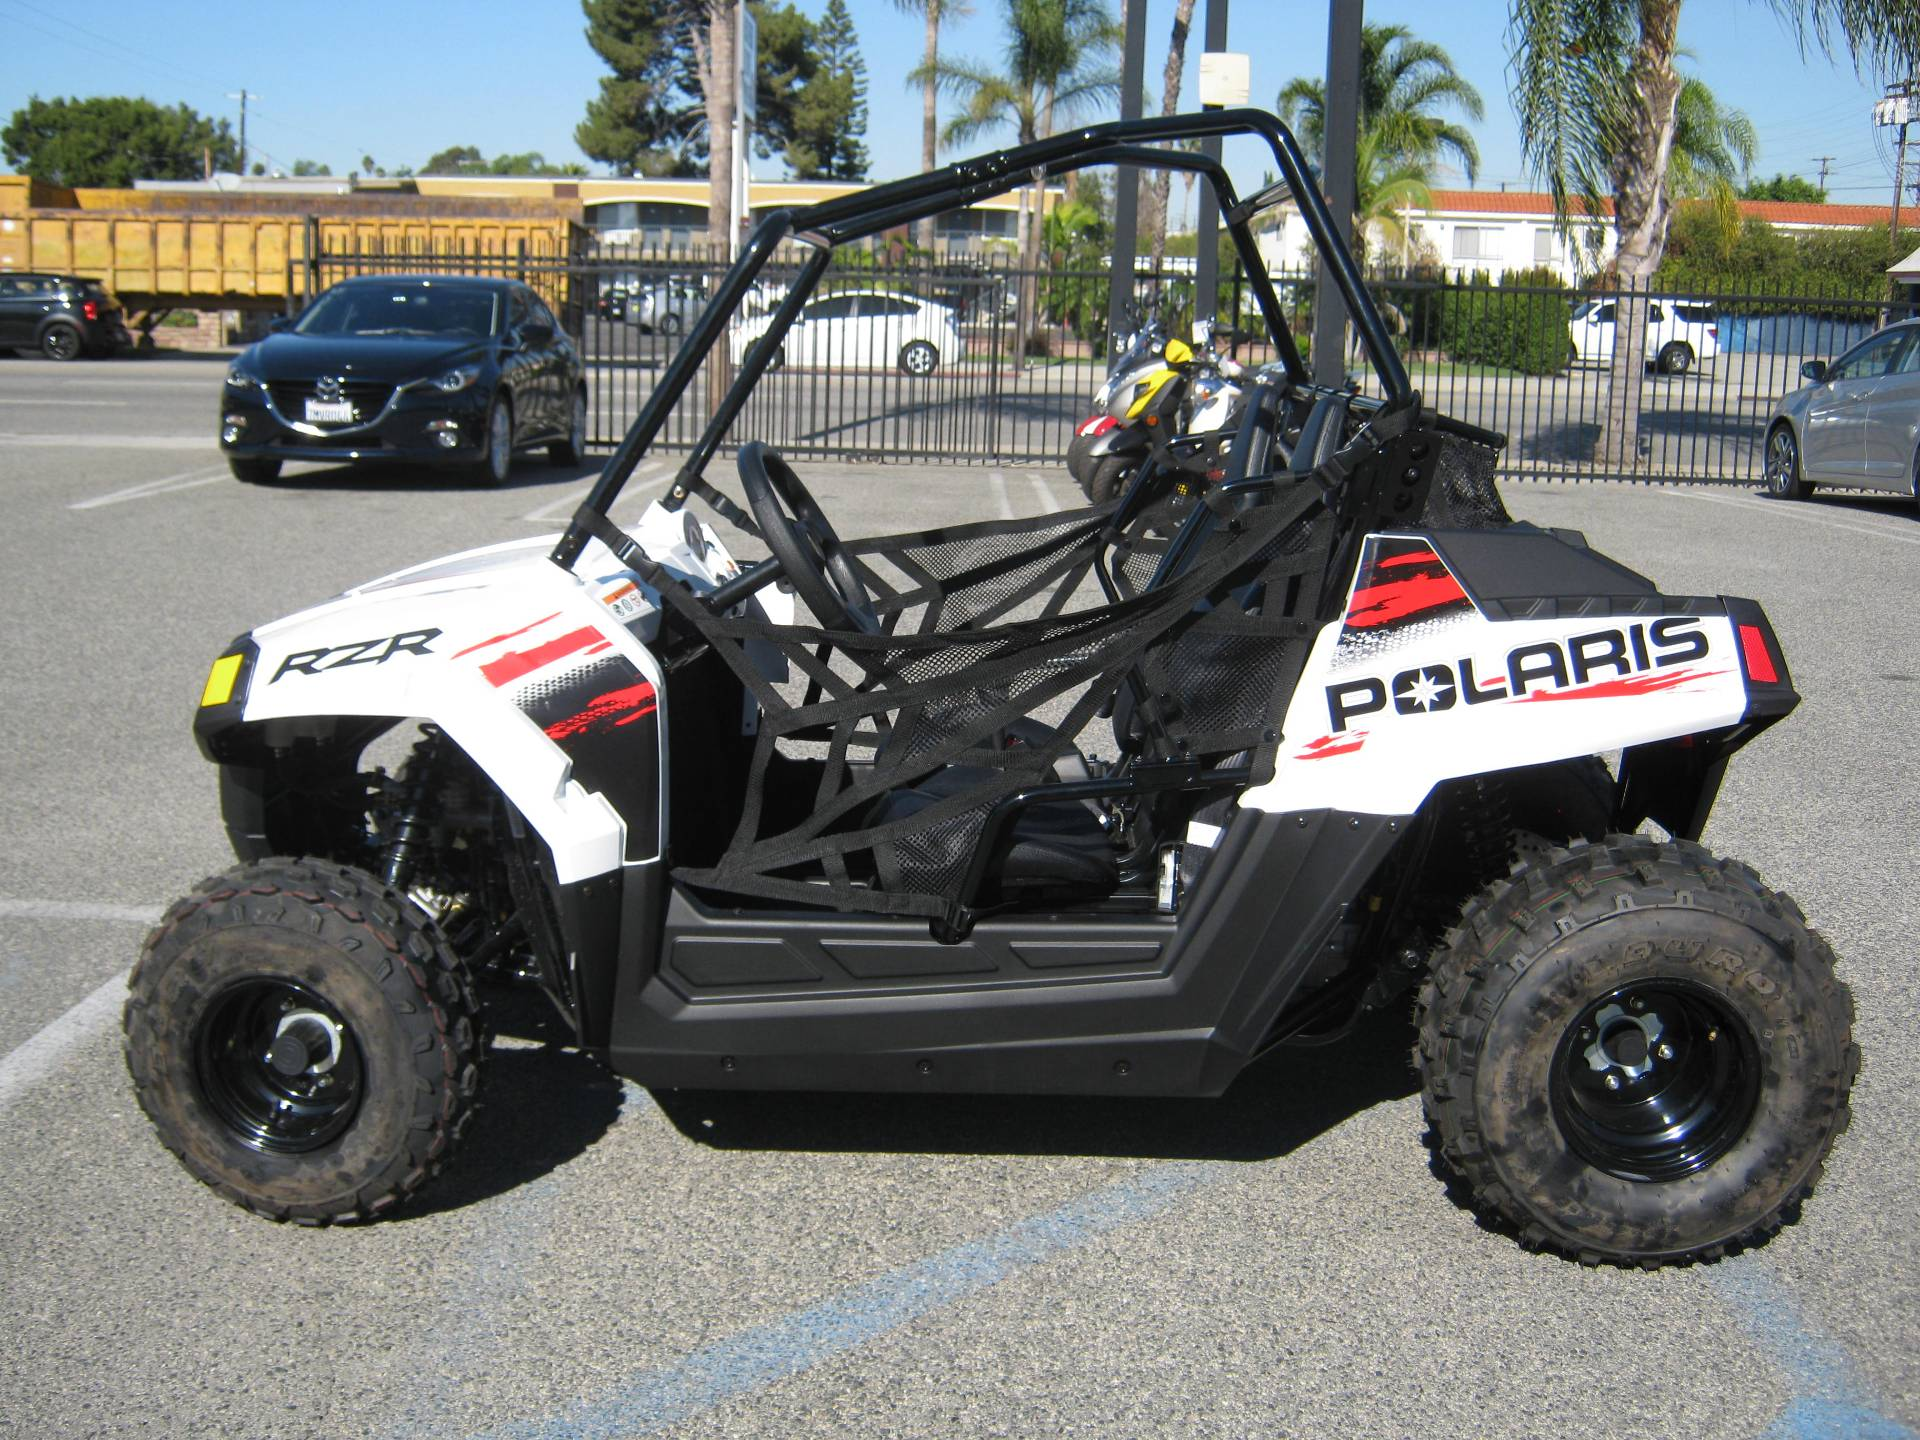 new 2017 polaris rzr 170 efi utility vehicles in harbor city ca stock number 1216 1863. Black Bedroom Furniture Sets. Home Design Ideas